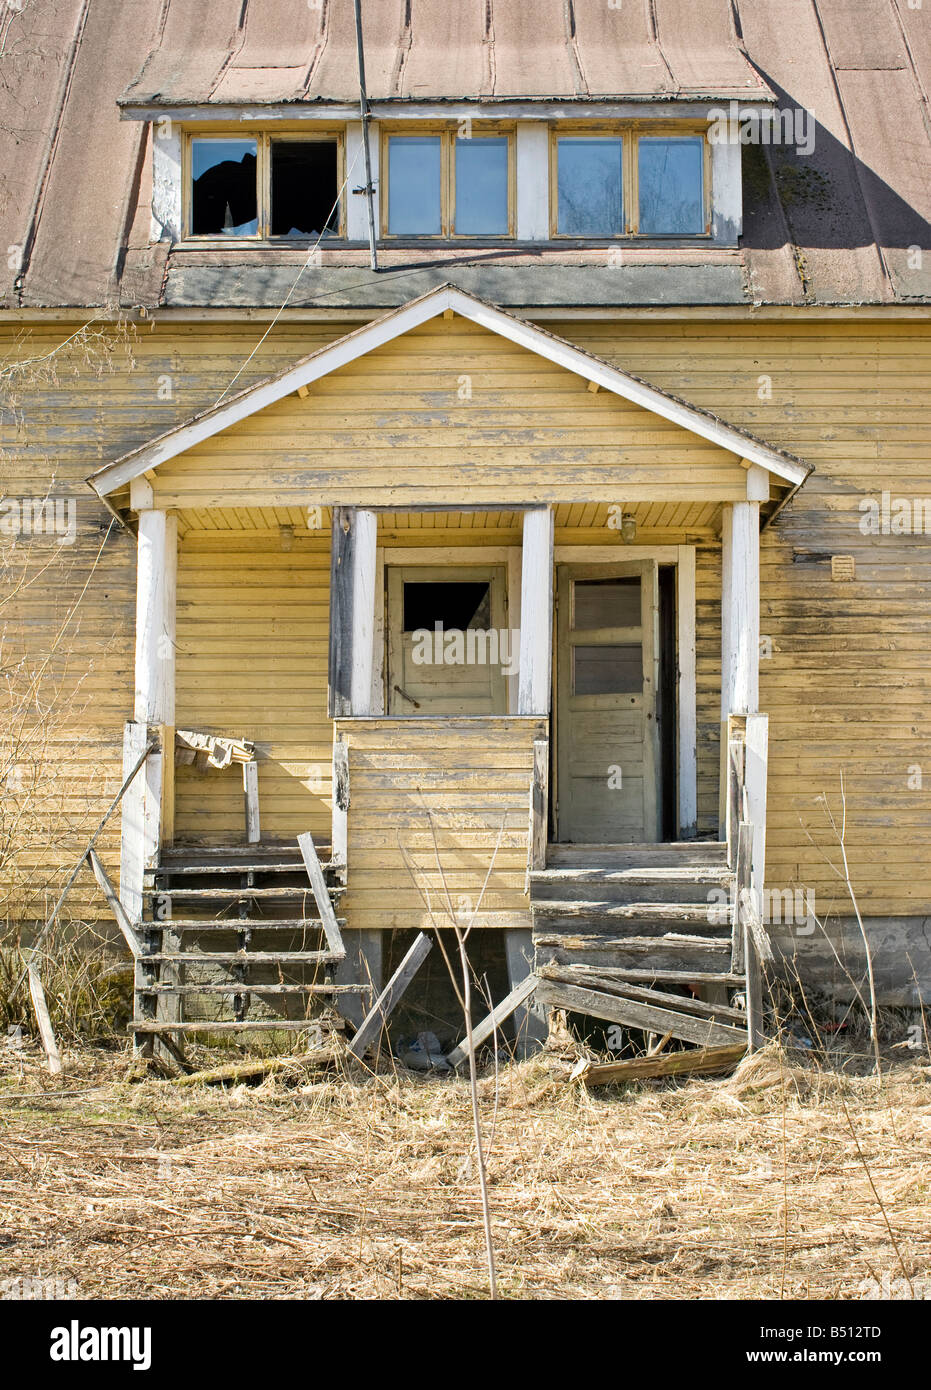 Facade of an abandoned house - Stock Image